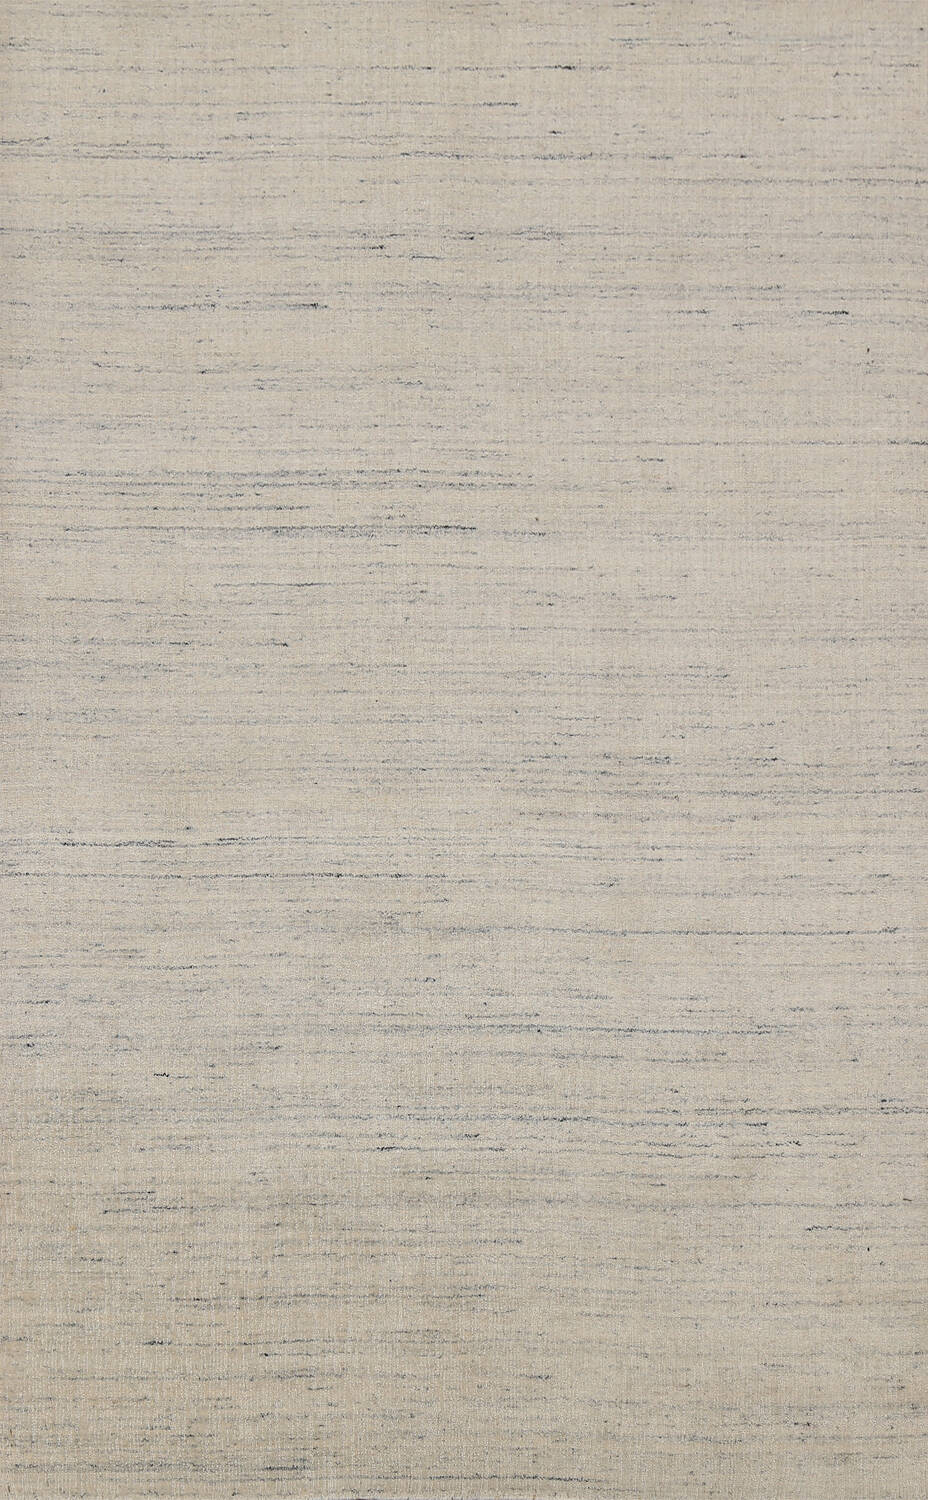 Contemporary Gabbeh Wool Area Rug 5x8 image 1